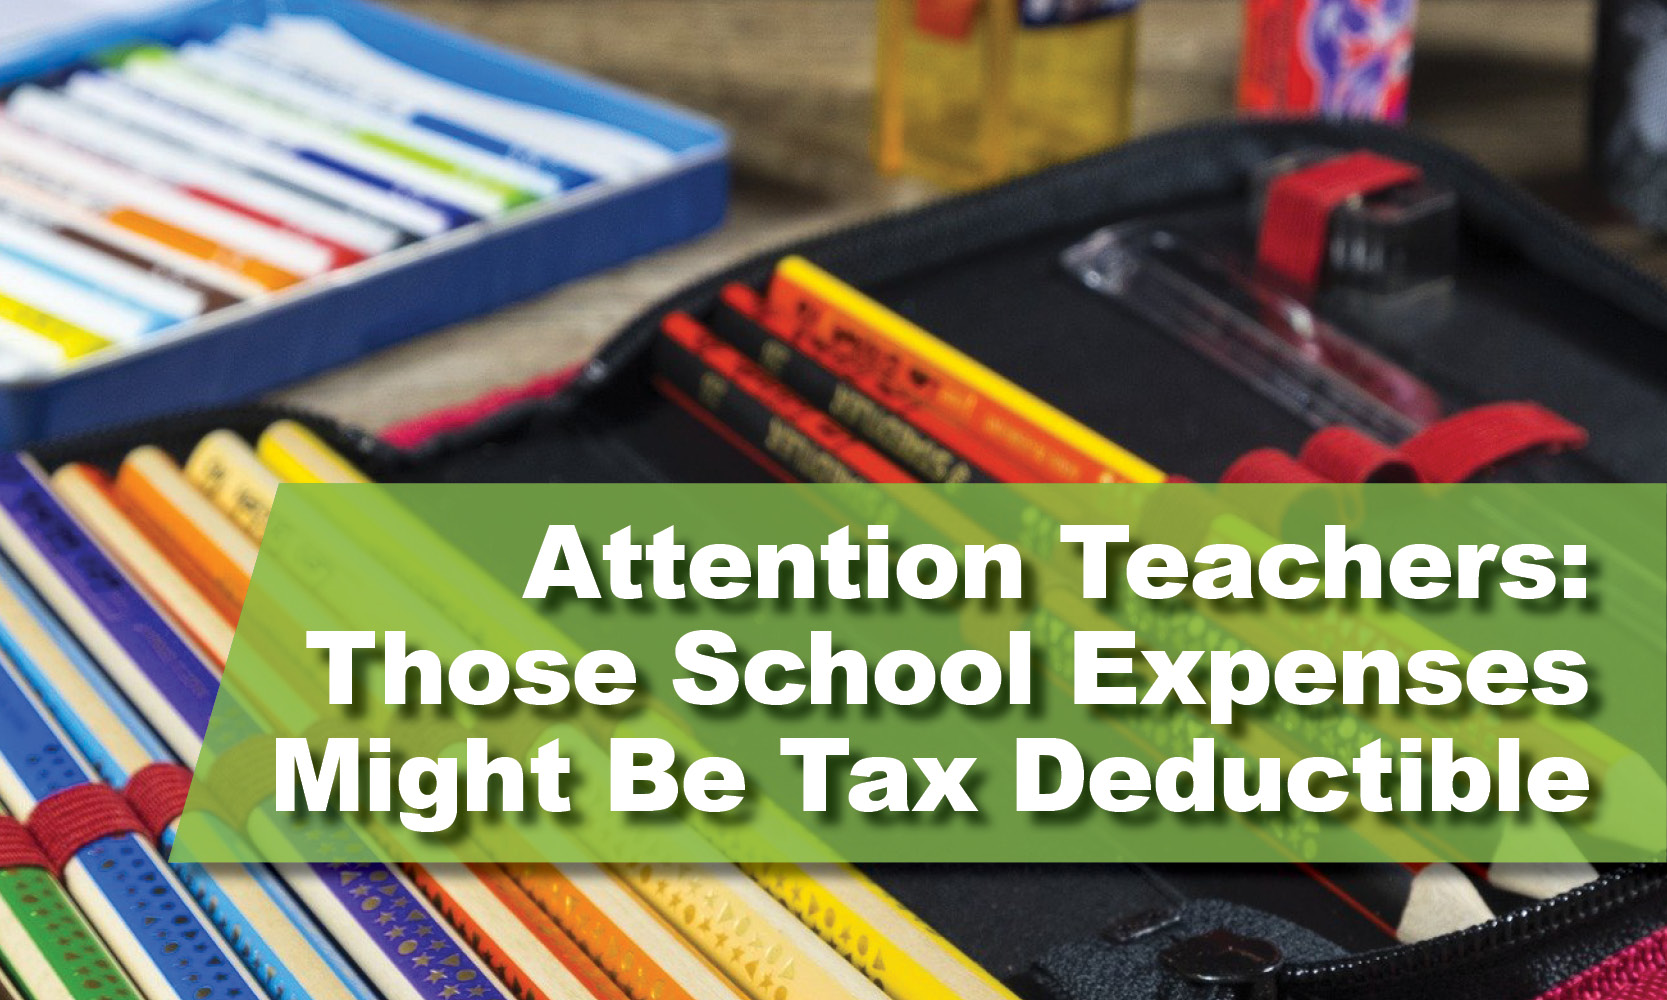 School Expenses Might Be Tax Deductible